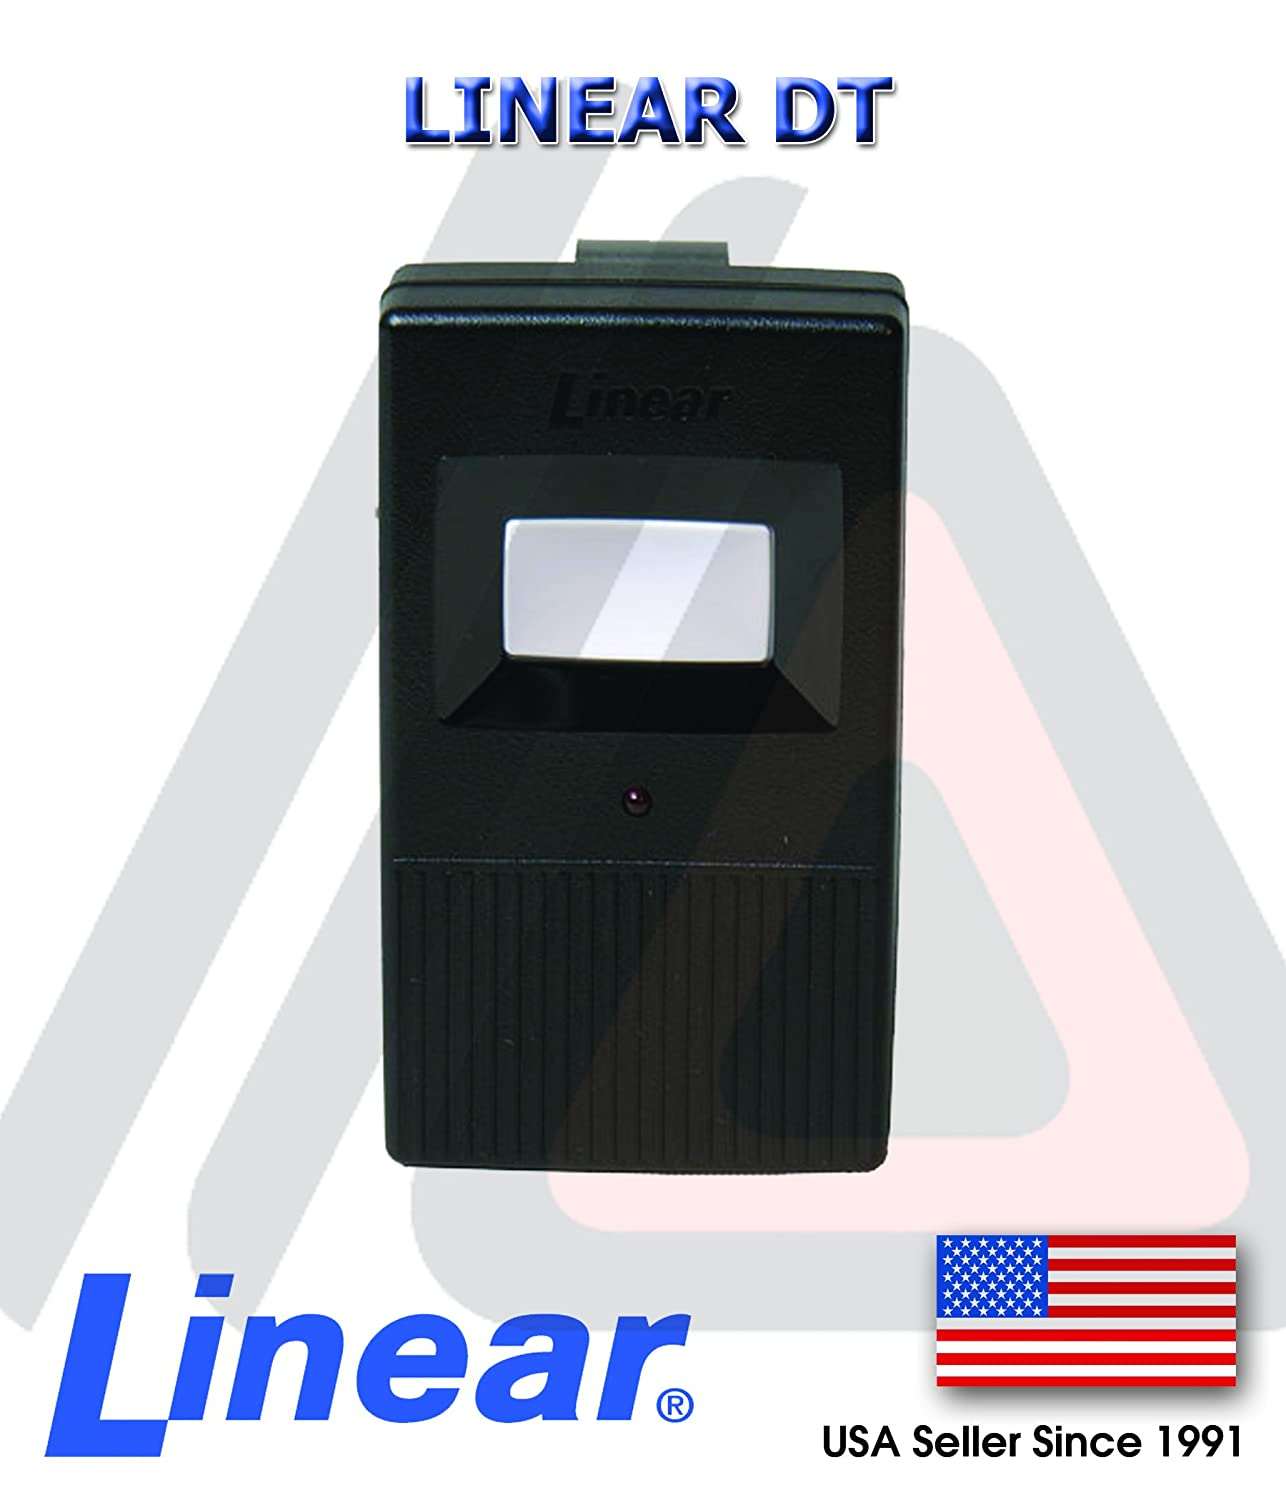 garage door opener transmitterLINEAR DT Linear Delta Remote DNT00002A DTC DTA Transmitter Gate